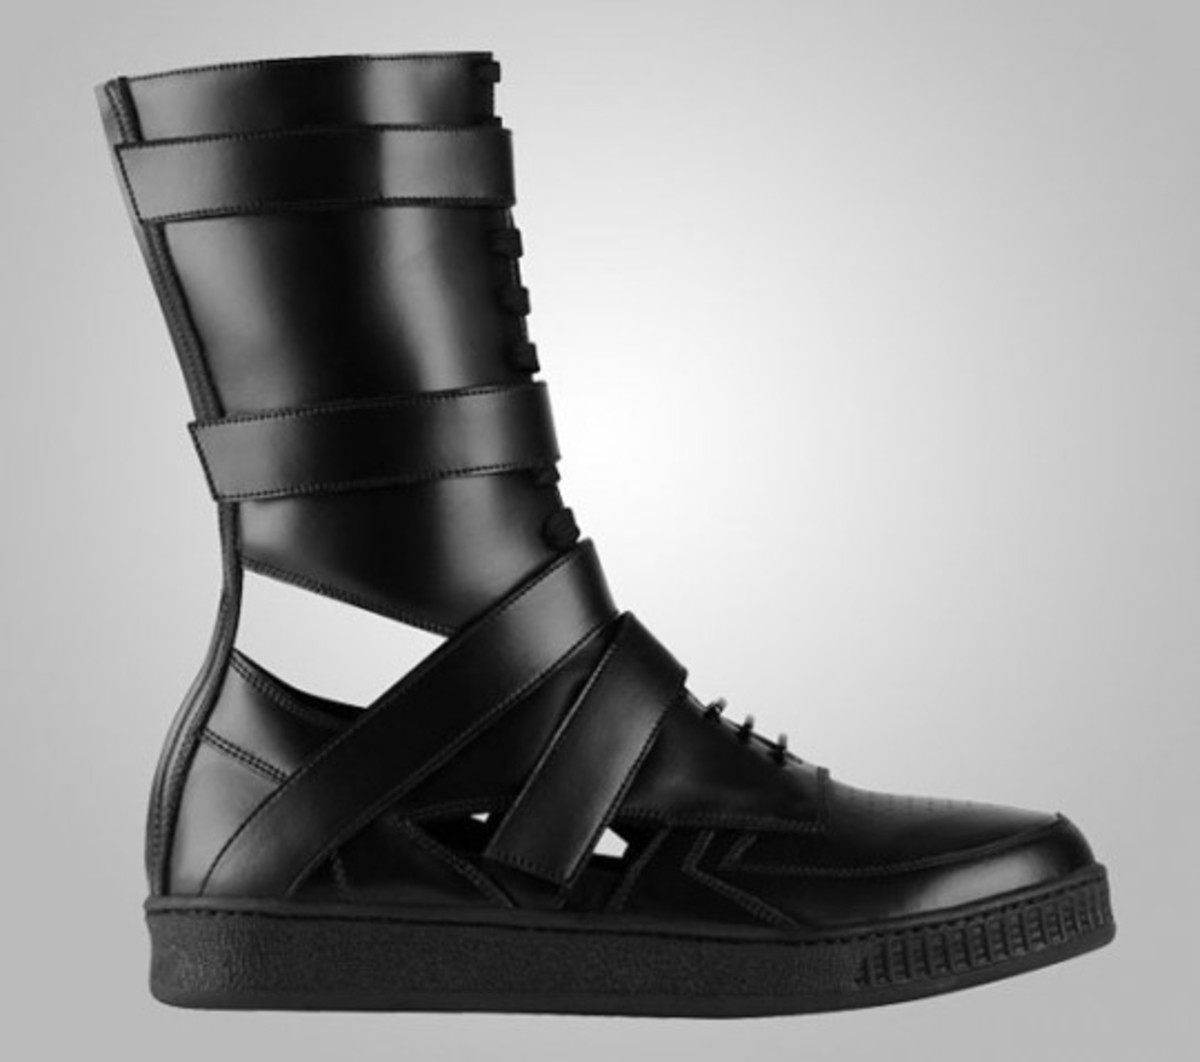 givenchy_ss10_sneakers_4